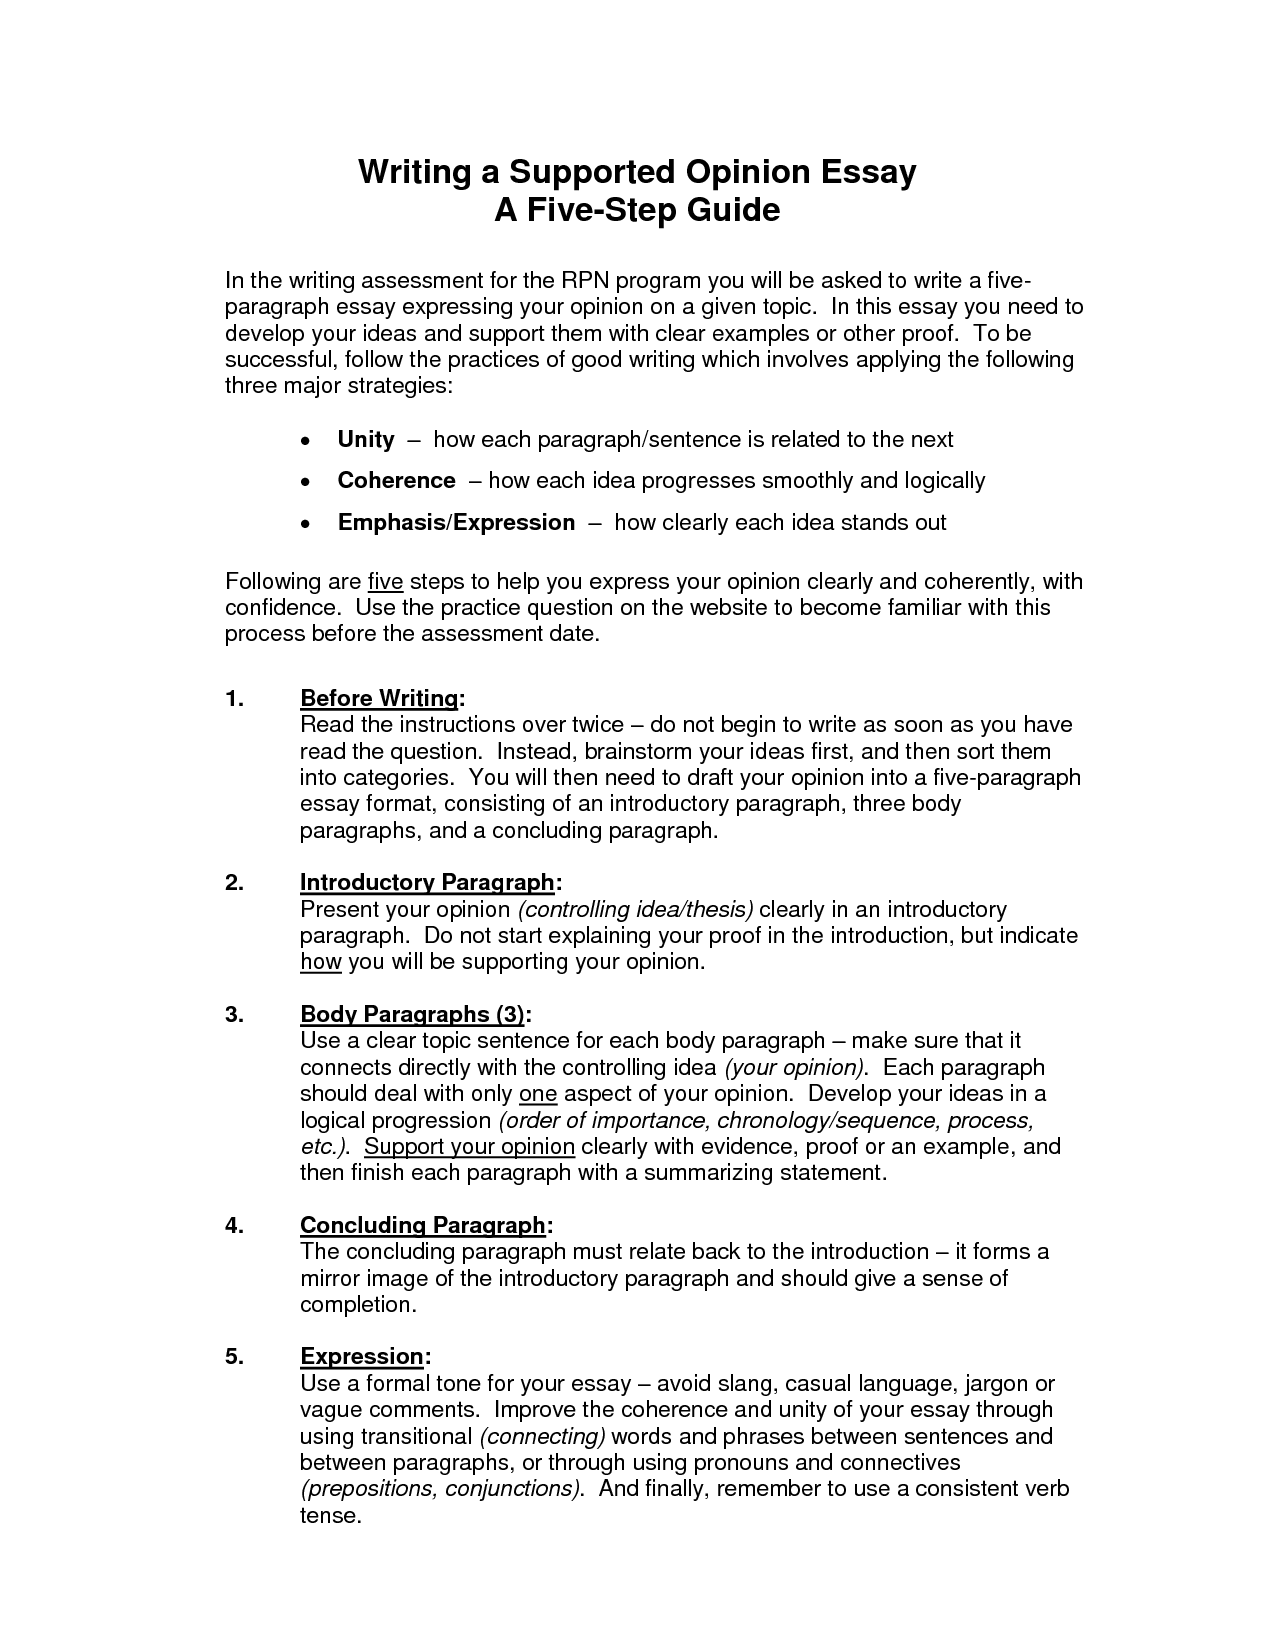 5 paragraph essay order of paragraphs A 5 paragraph essay is a cool way to check student's readiness the article explains how to carry out an effective 5 paragraph essay outline and shares other time-tested tips & tricks on writing a college-level paper.